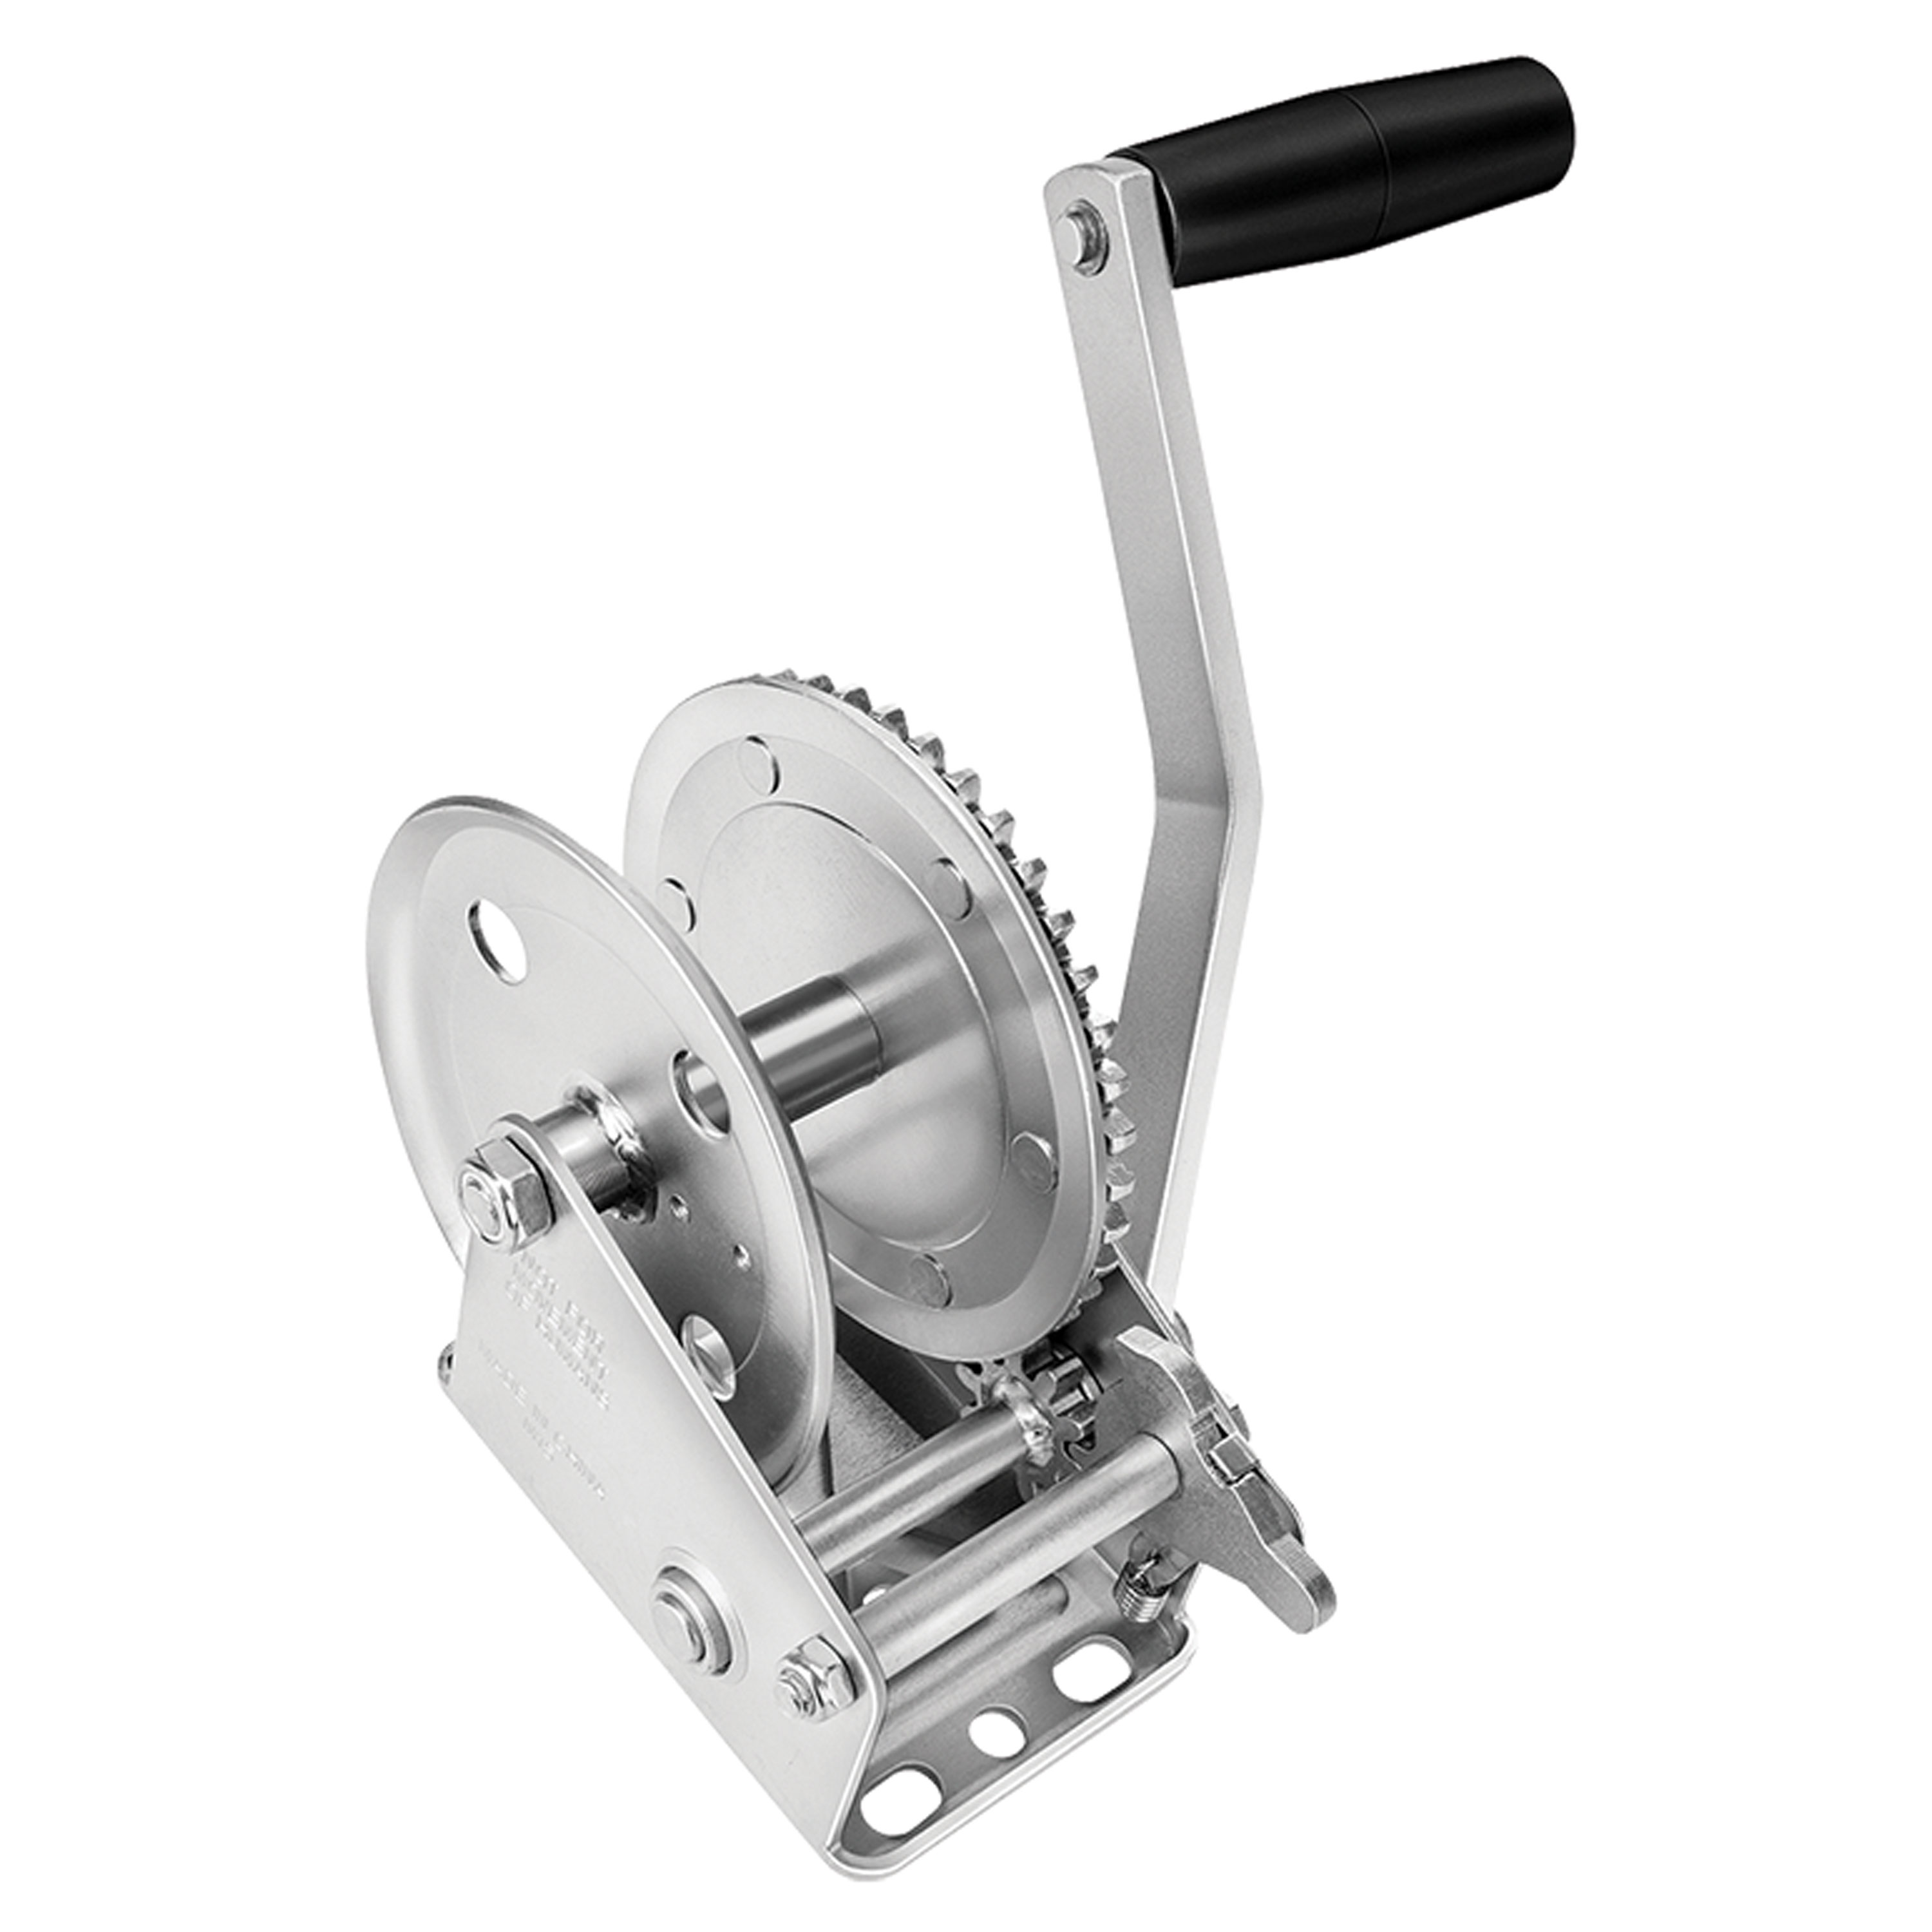 Cequent 142200 Winch Hand 1500Lb